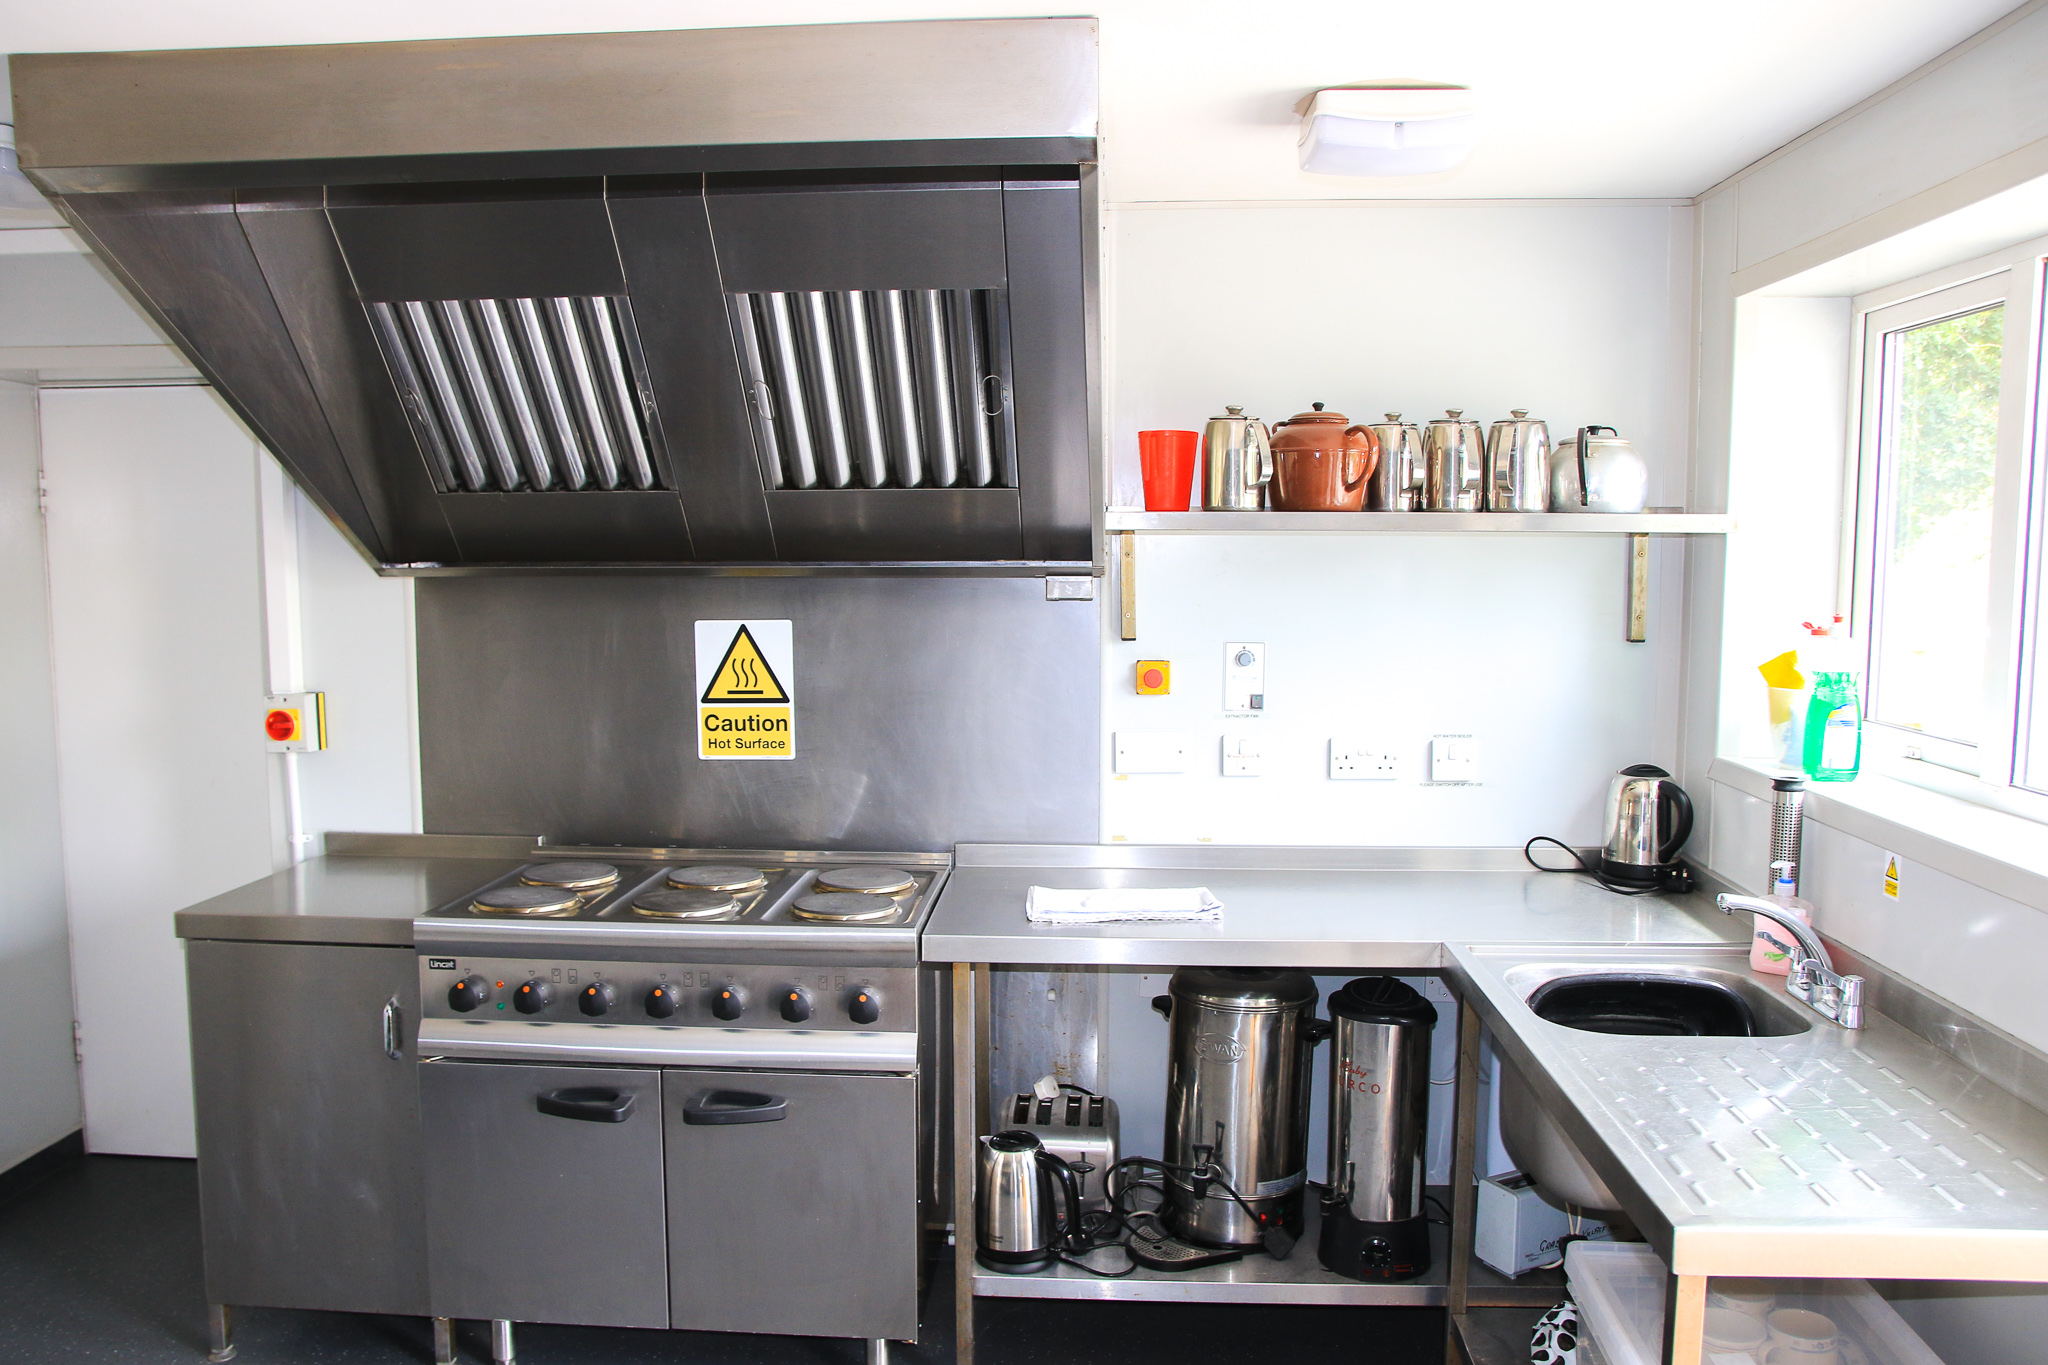 Commercial grade kitchen with electric oven, extractor hood, kettles, hot water urns and toaster